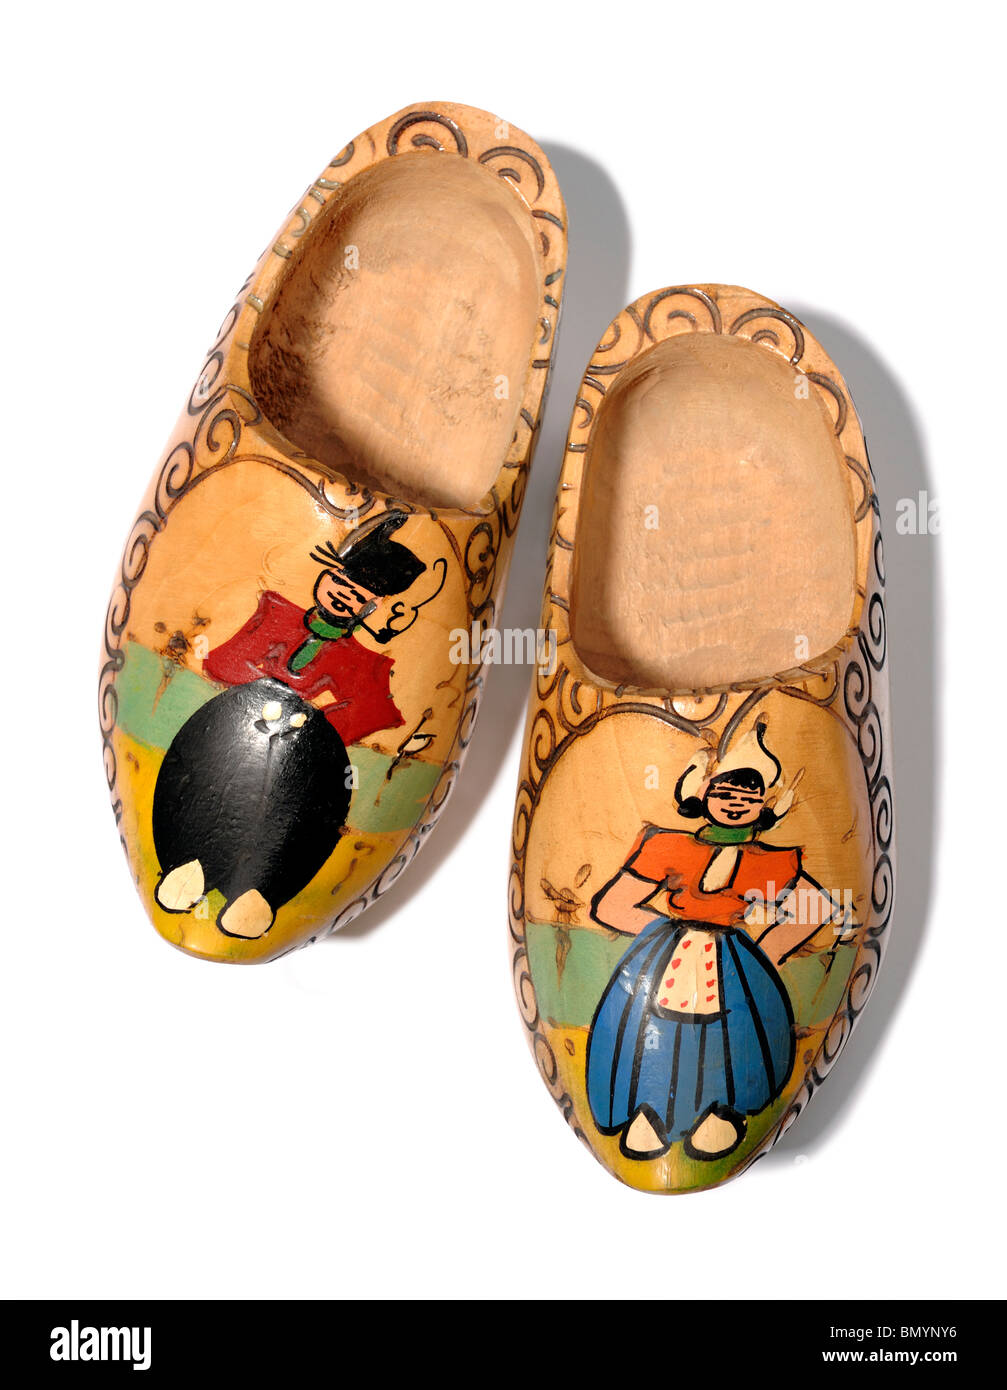 Wooden clogs - Stock Image